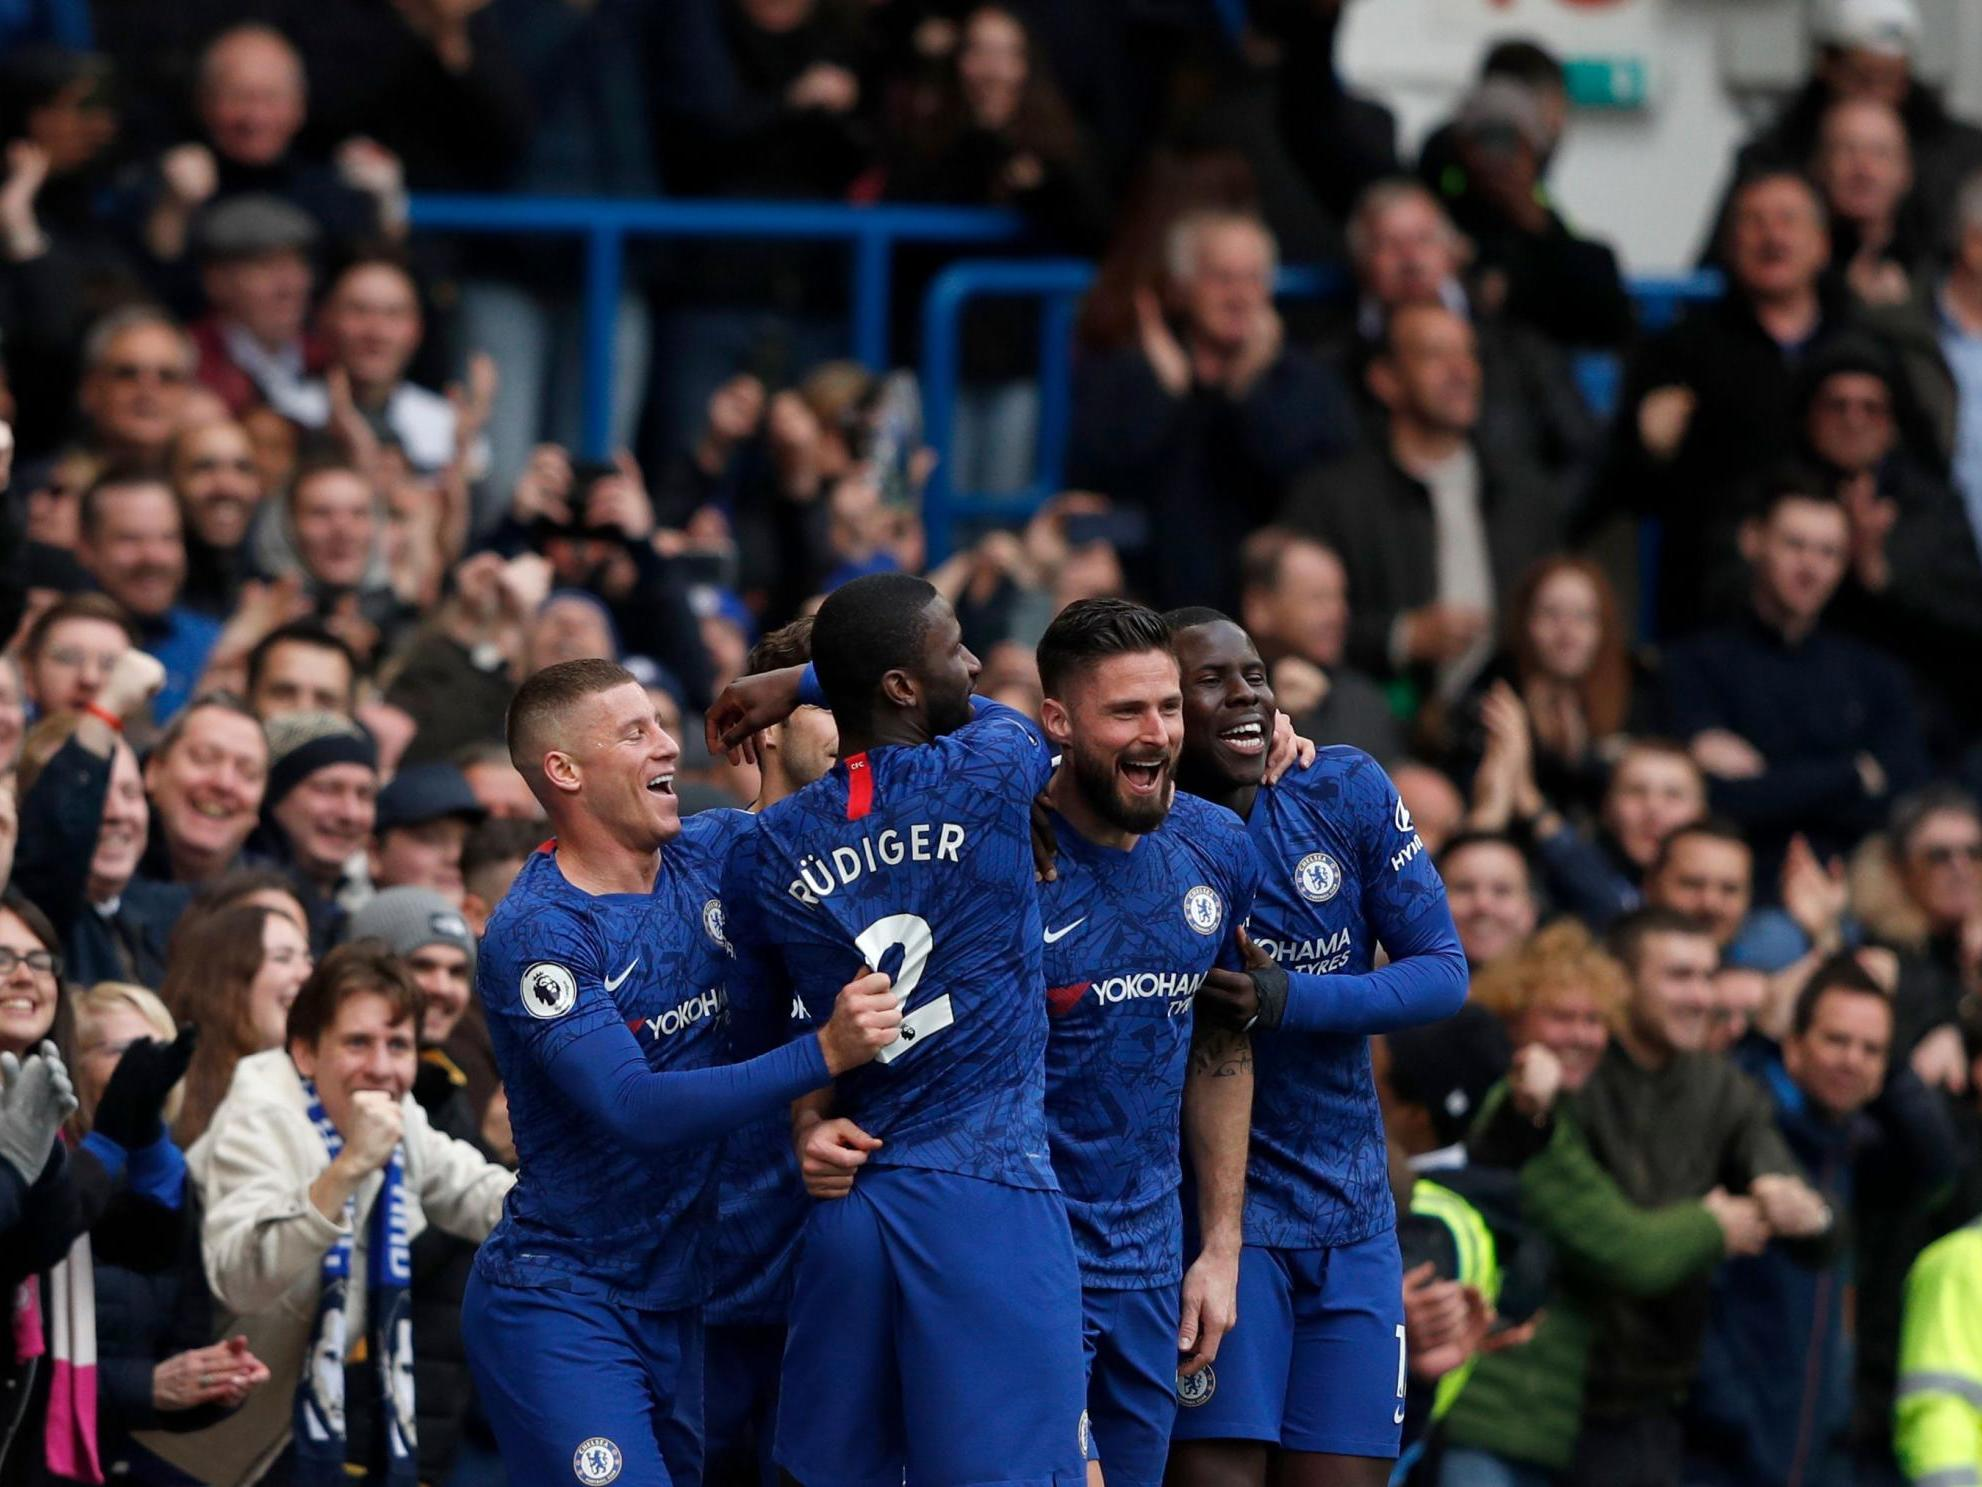 Aston Villa vs Chelsea live stream: How to watch Premier League fixture online and on TV tonight thumbnail